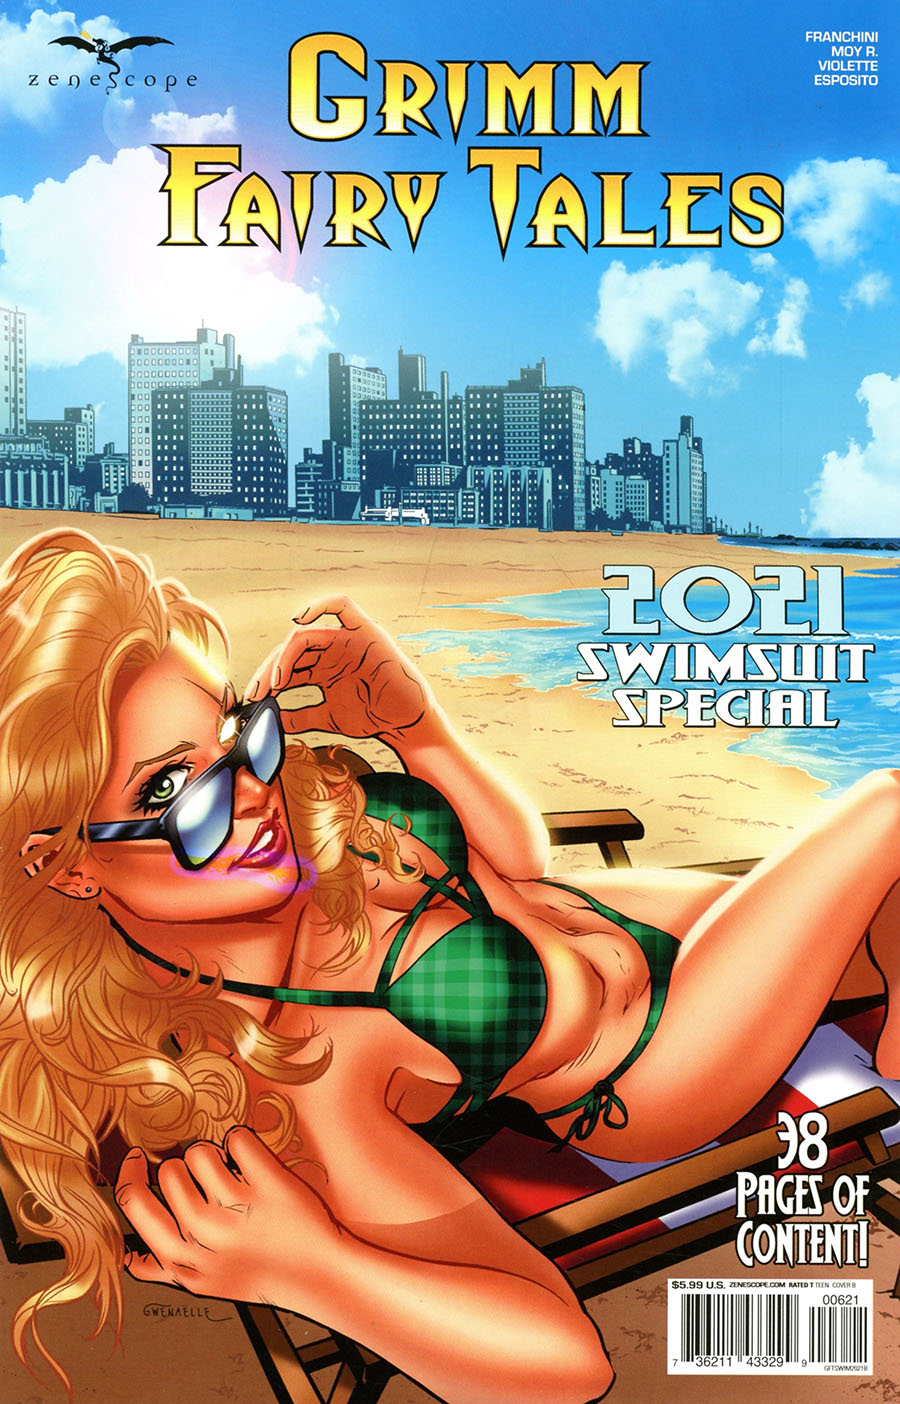 Grimm Fairy Tales Presents Swimsuit Special 2021 #1 (One Shot) Cover B Riveiro